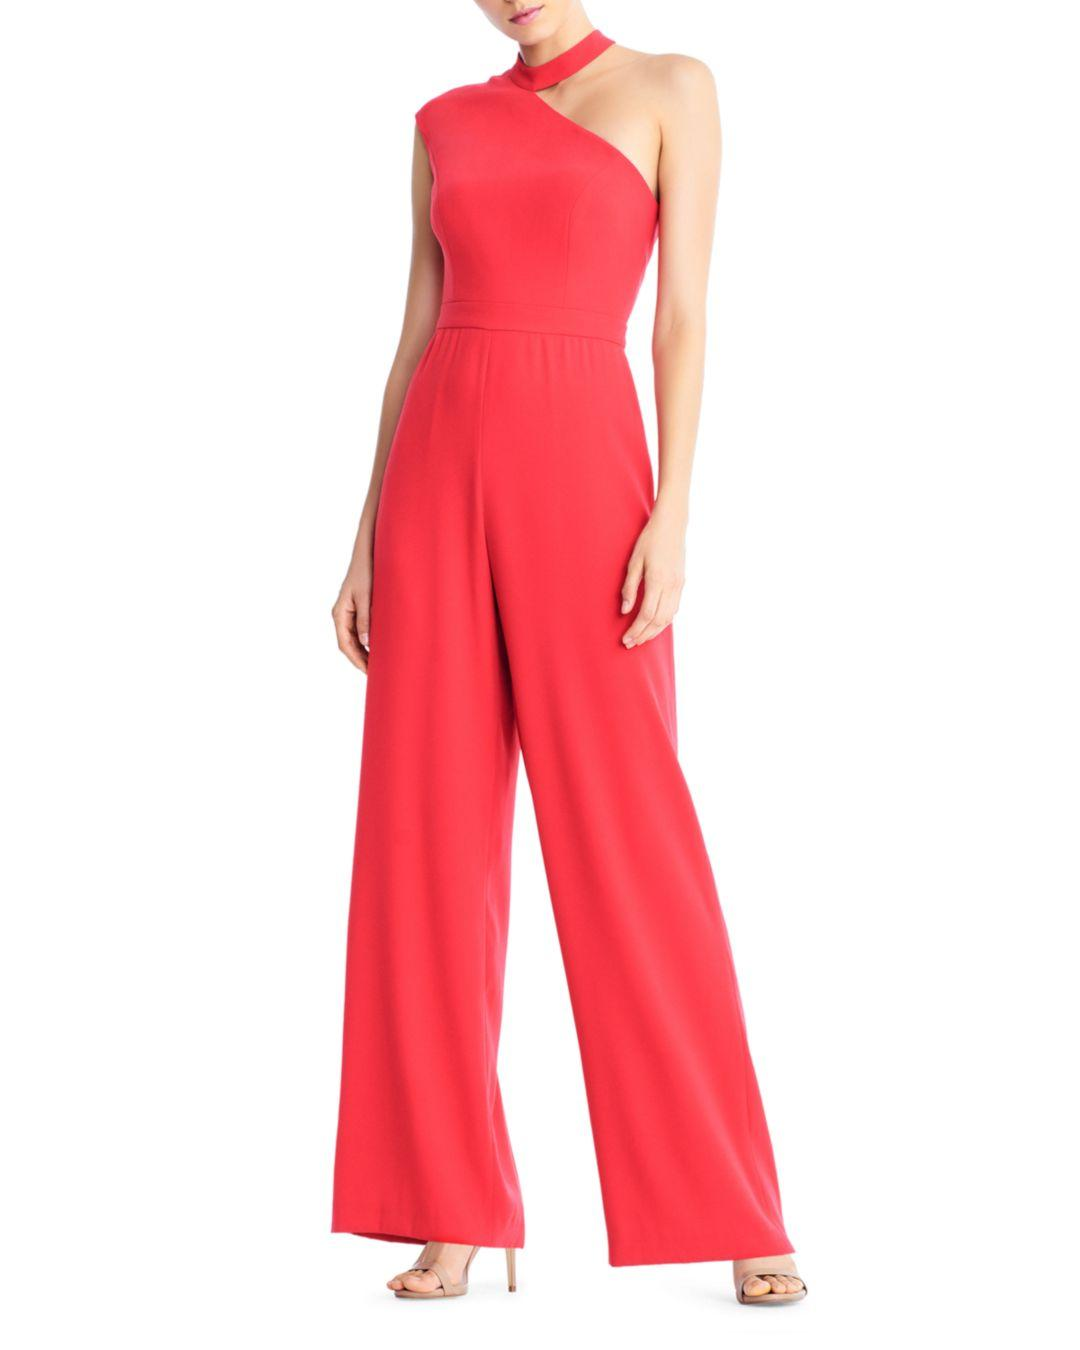 7efb84111c5 Lyst - Aidan By Aidan Mattox Crepe One-shoulder Jumpsuit in Red